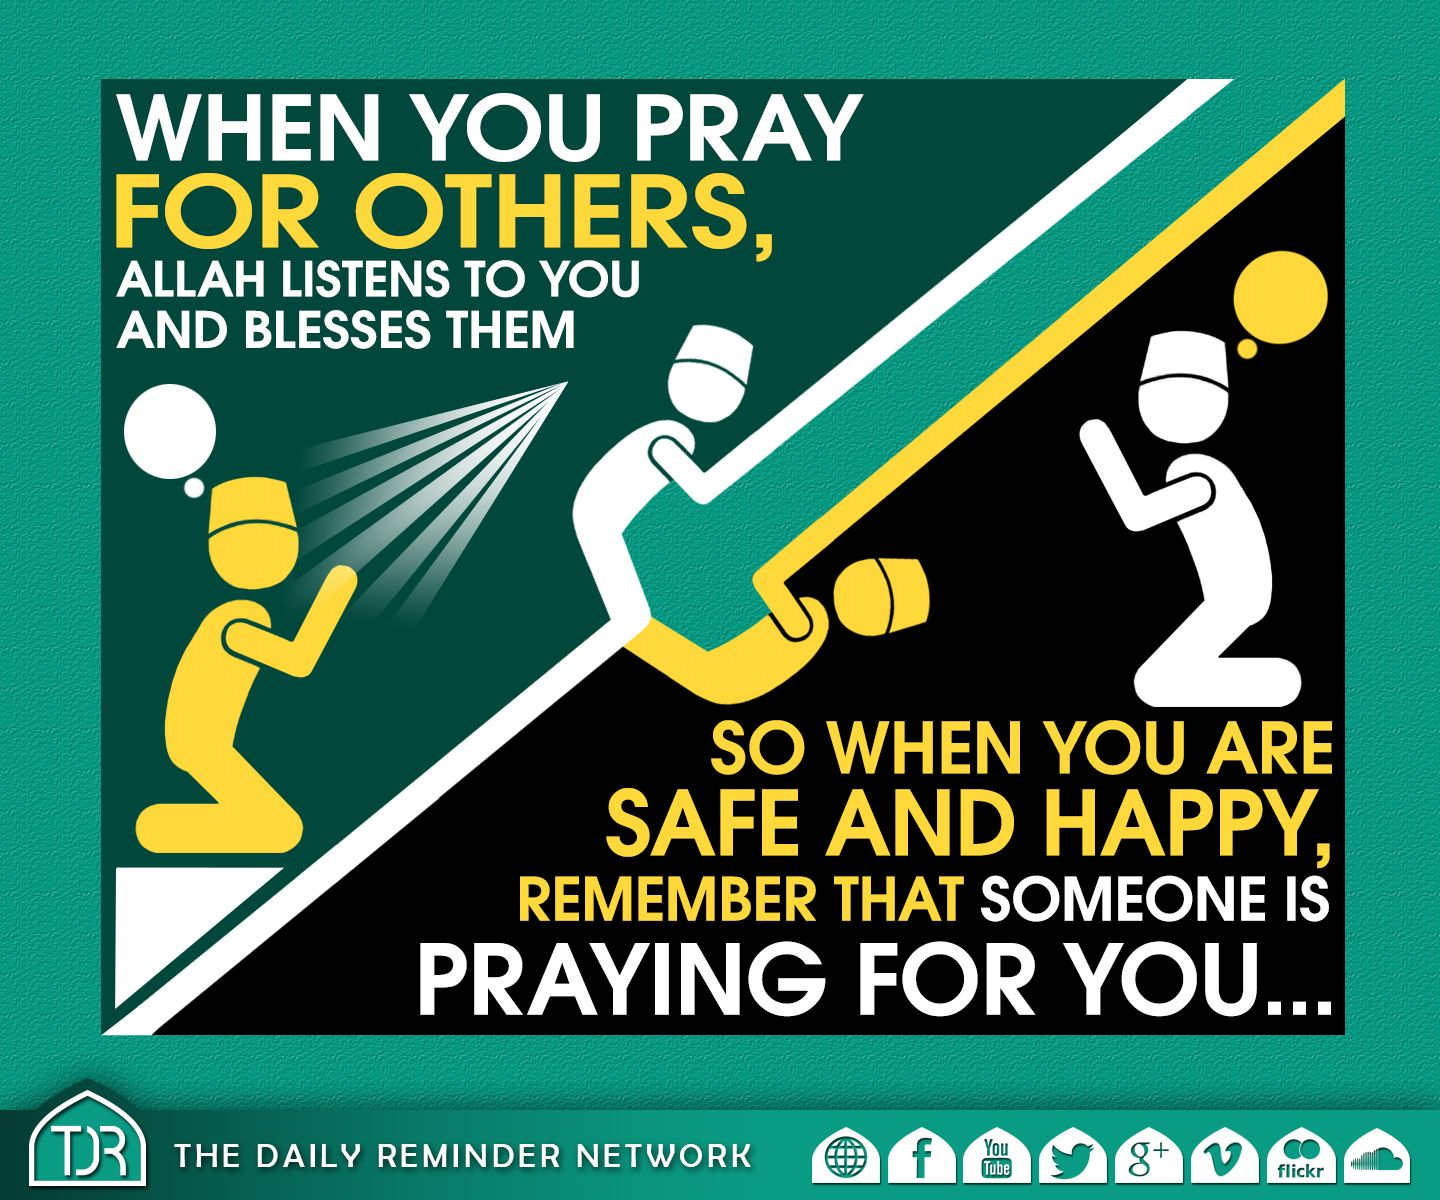 When you pray for others, Allah listens to you and blesses them... So when you are safe and happy, remember that someone is praying for you…